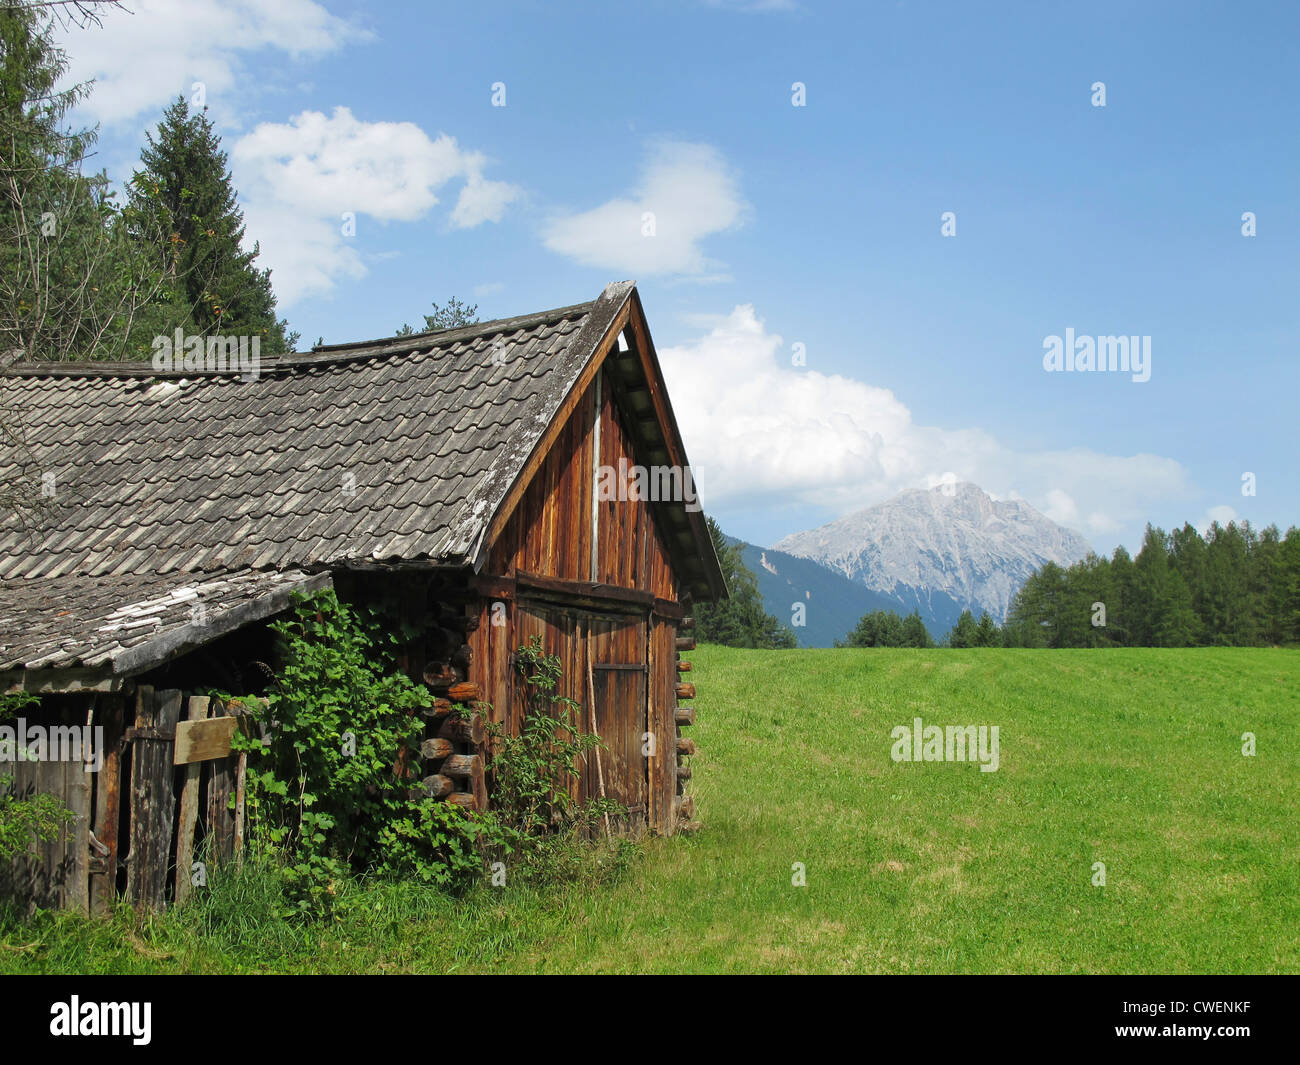 An old mountain hut in the tyrolean alps near Innsbruck. Photographed in Obsteig at the Mieminger Sun Plateau. - Stock Image